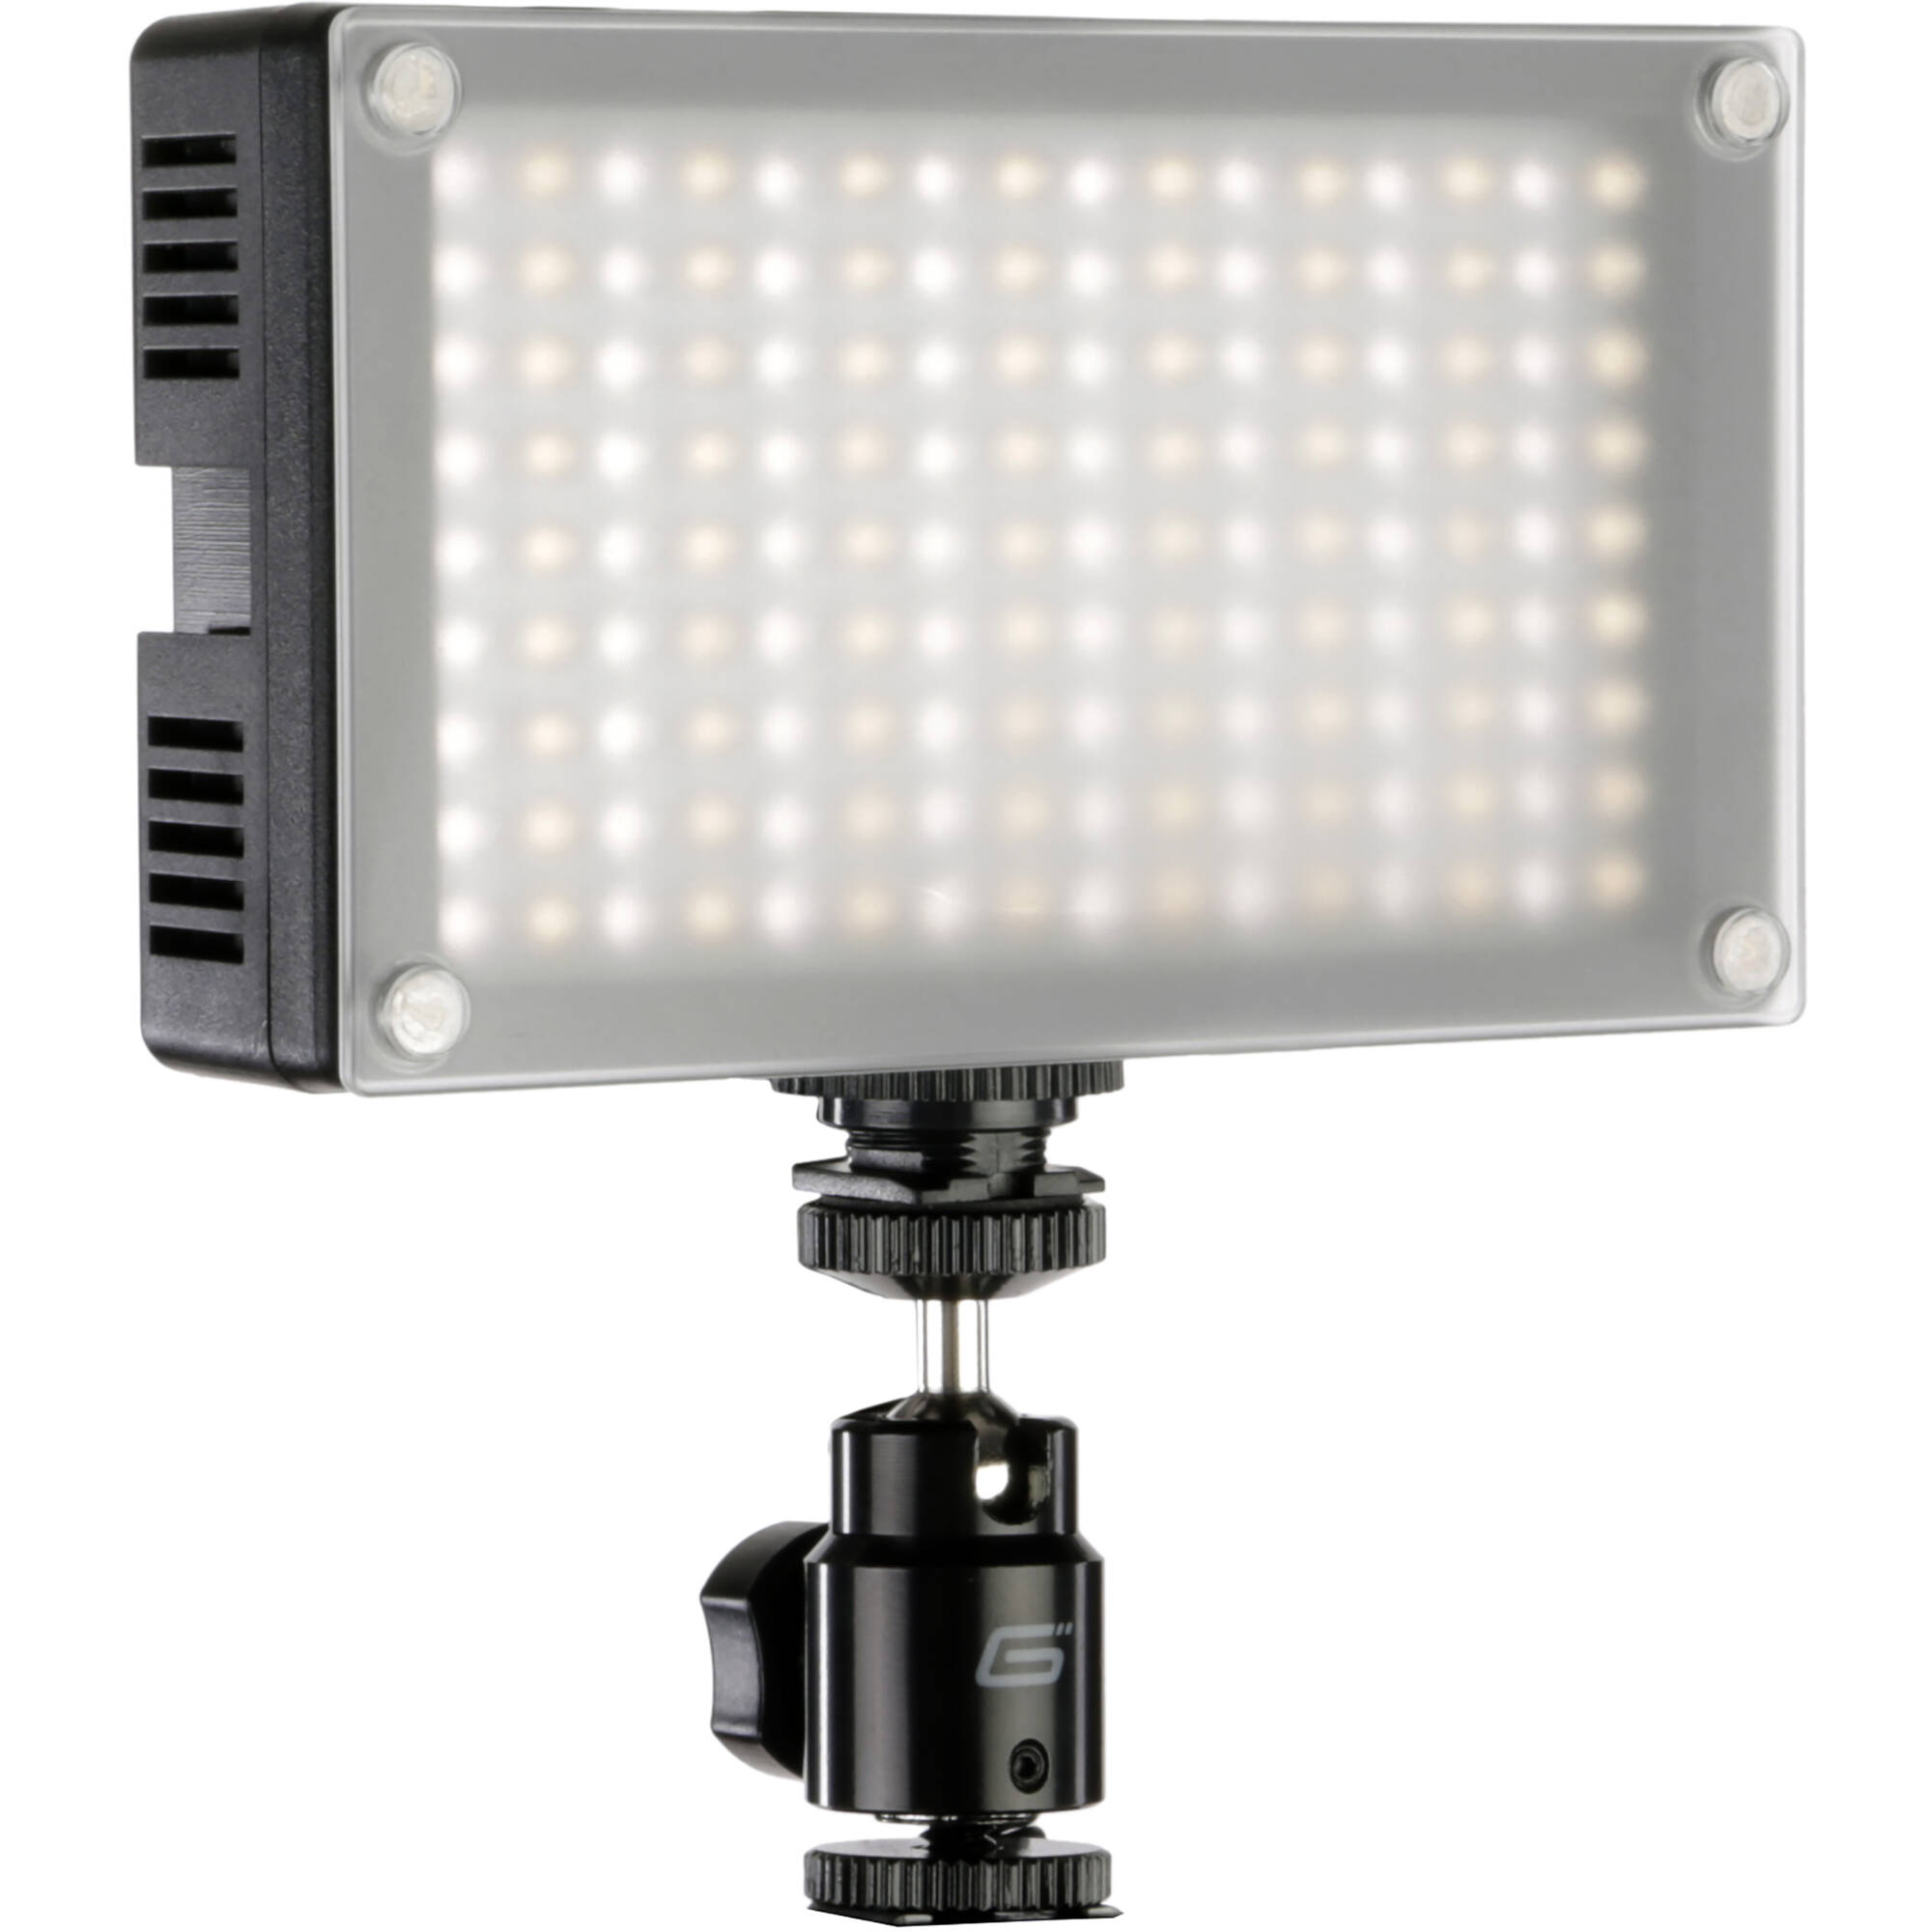 Genaray Led 6200t 144 Led Variable Color On Camera Led